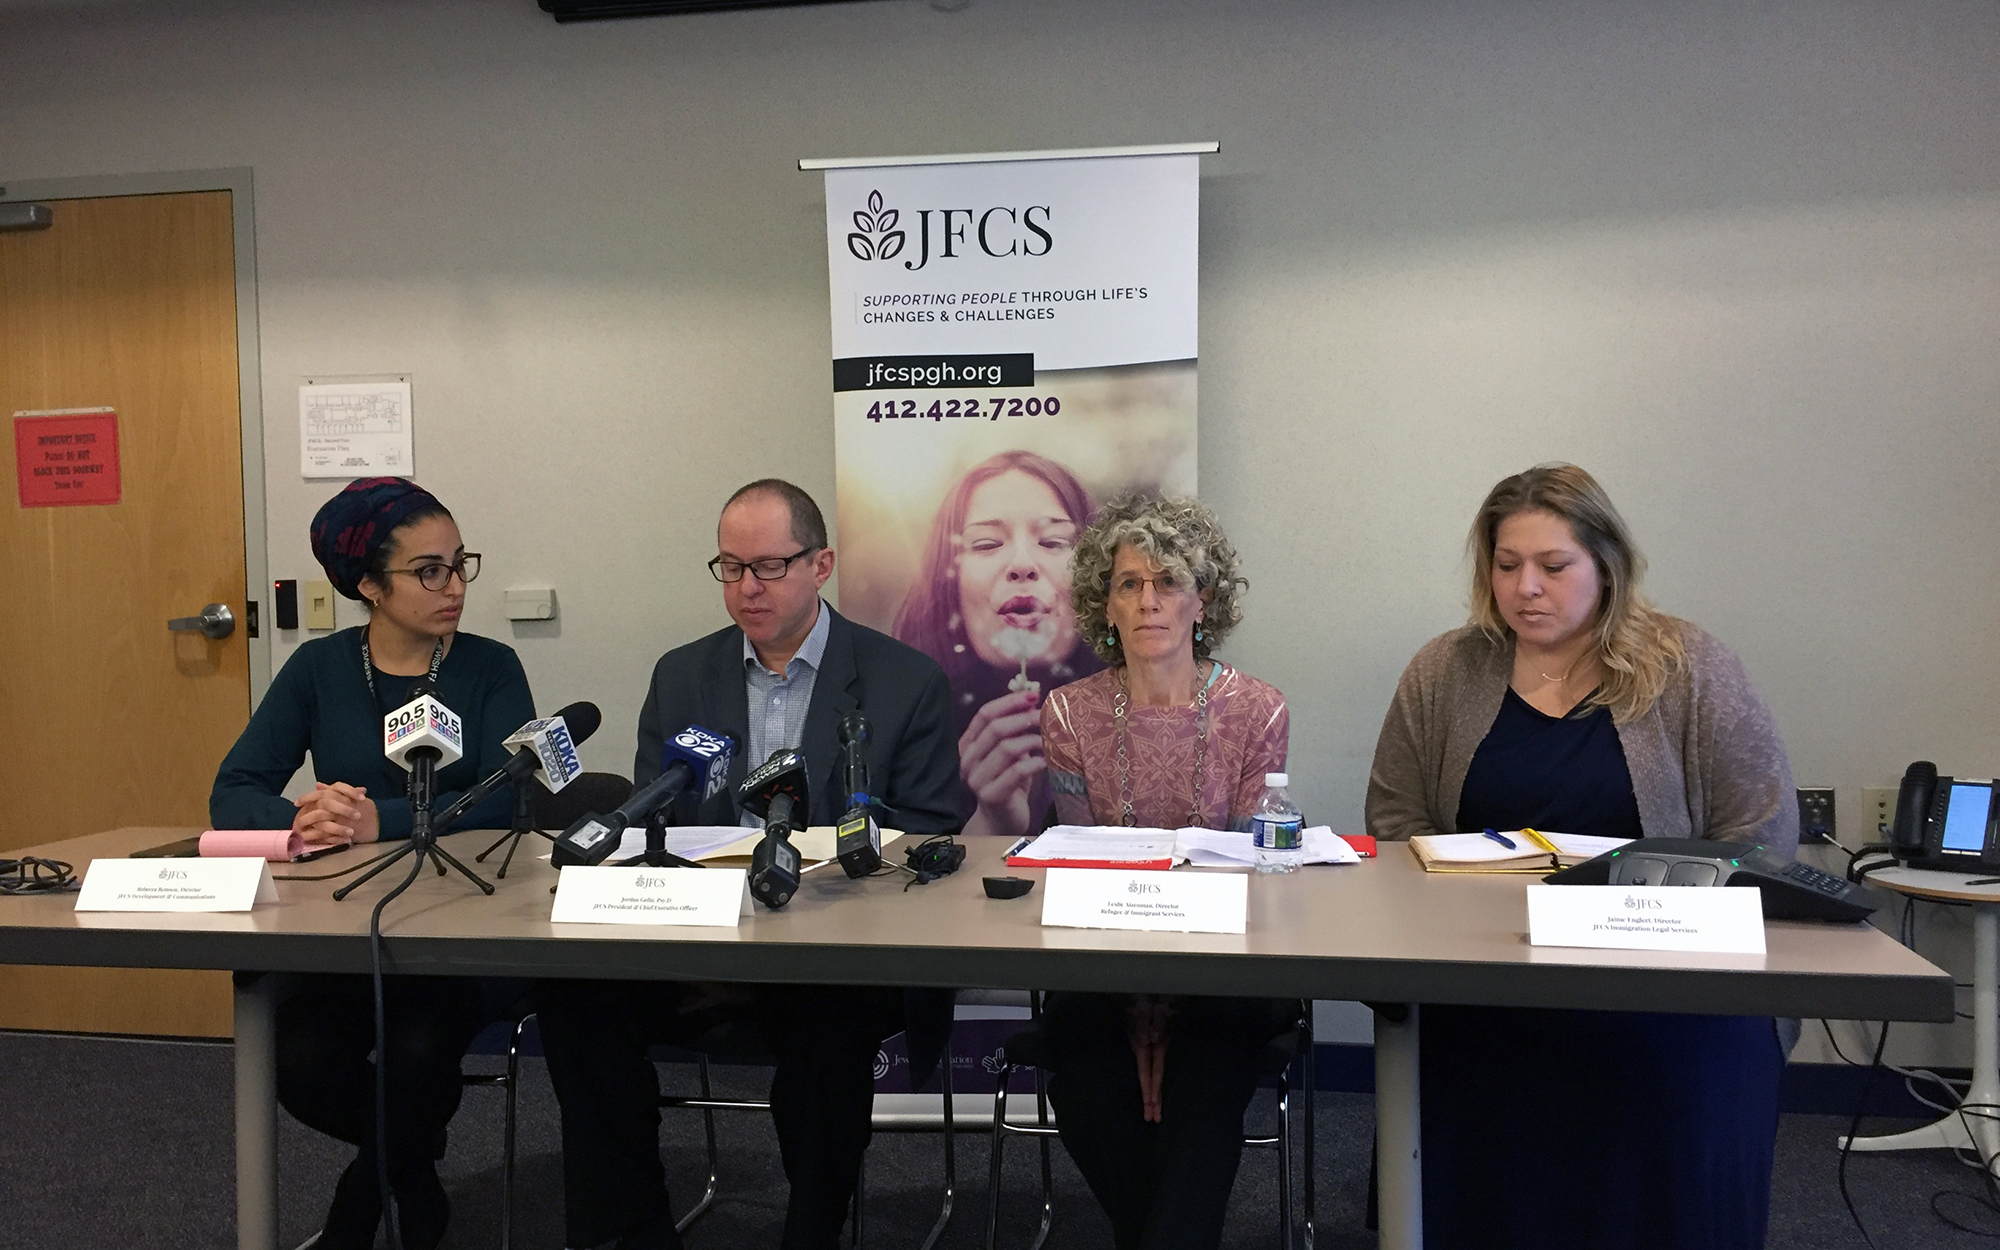 (From left) Jewish Family and Community Services of Pittsburgh staff members: Rebecca Remson, director of development and communications; Jordan Golin, president and CEO; Leslie Aizenman, director of refugee and immigrant services; and Jamie Englert, director of immigration legal services.